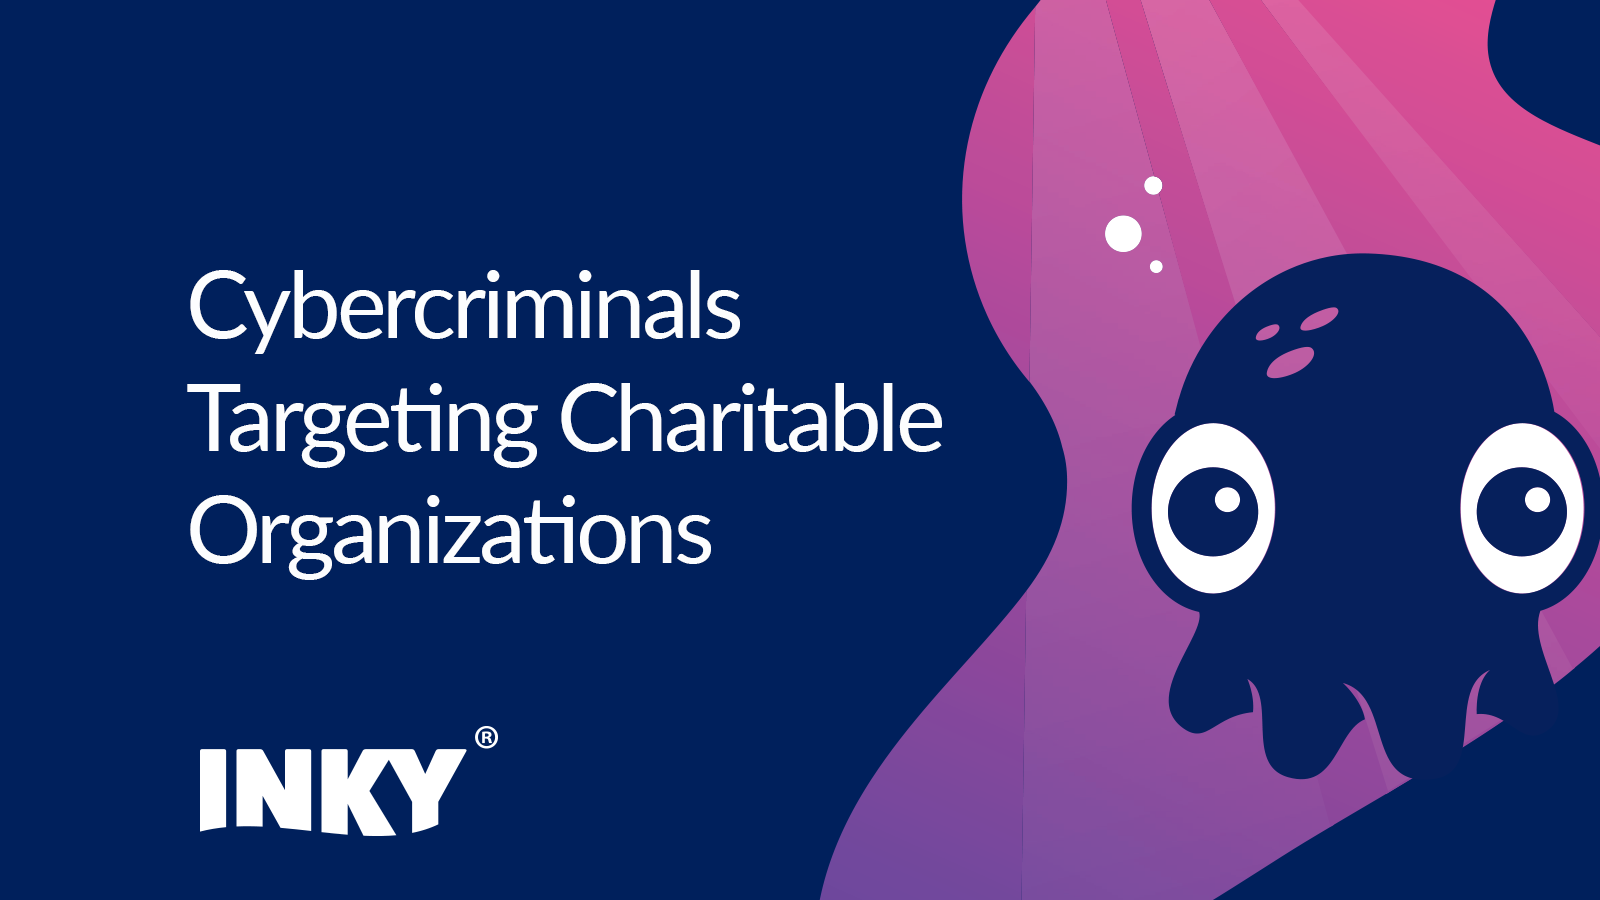 004 Cybercriminals Charitable Orgs